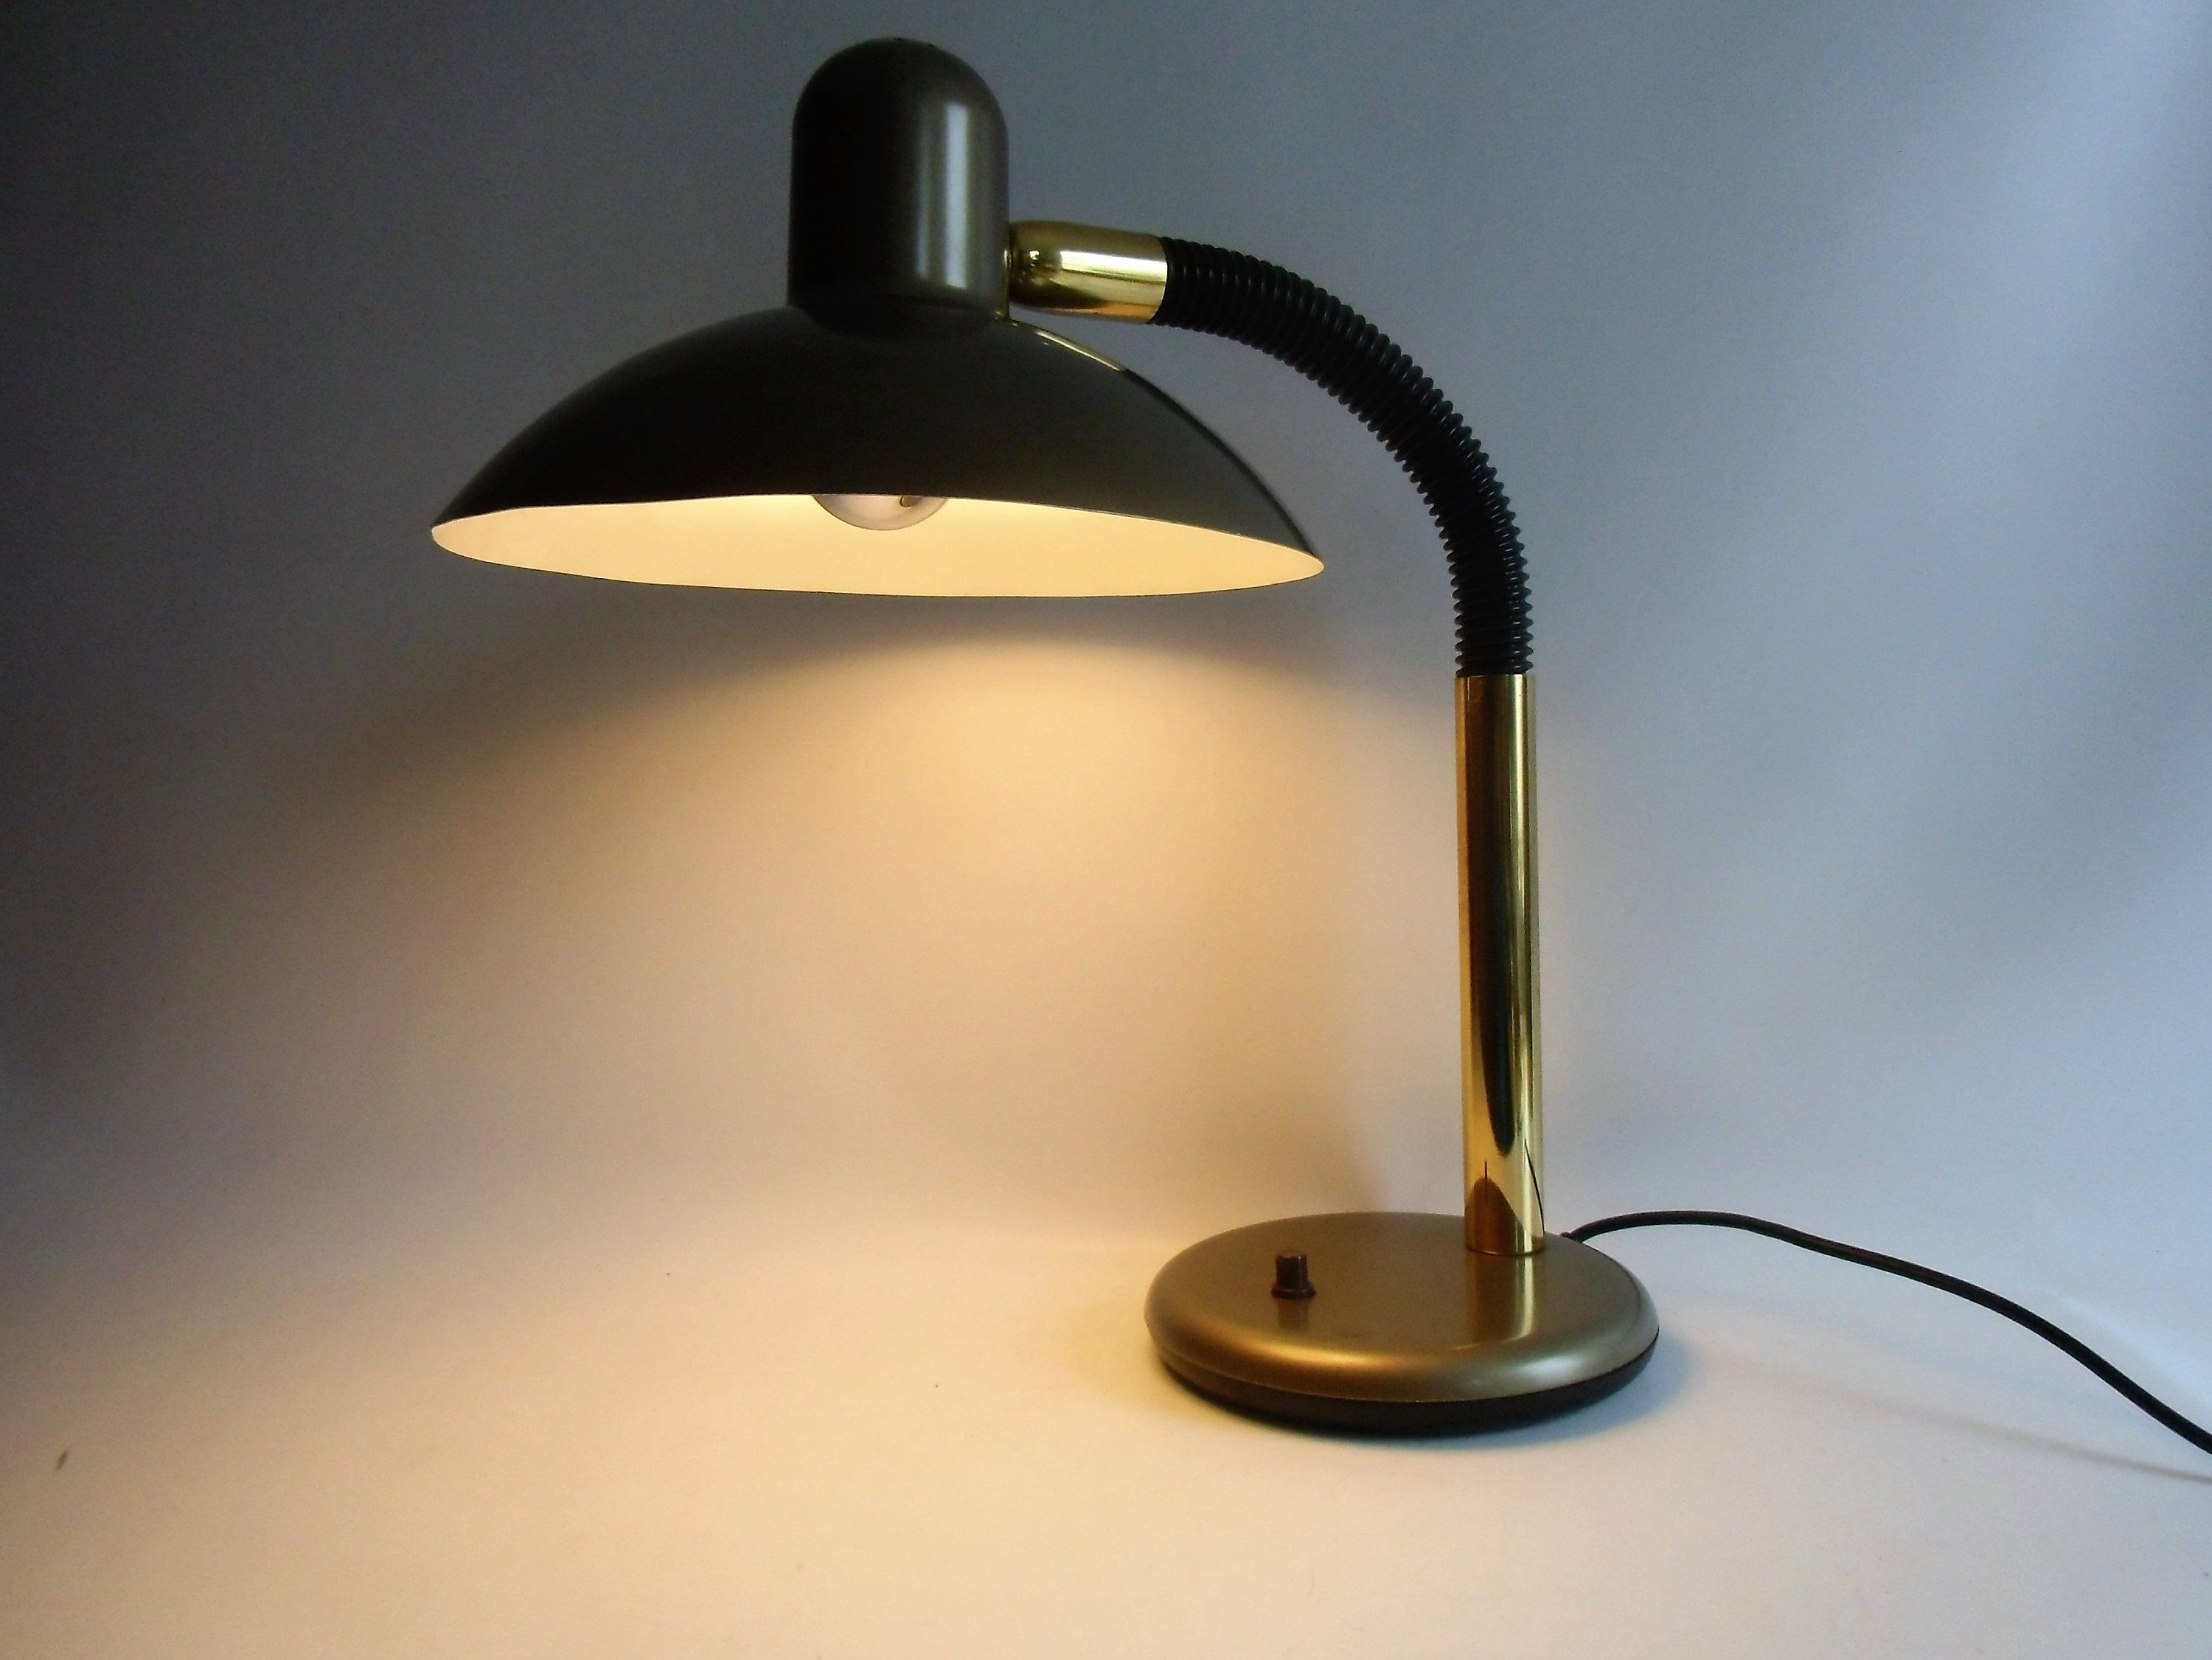 Swan Lamp Classic From 80s The Neck Design Desk Vintage Sis Metal YbeWEIDH29